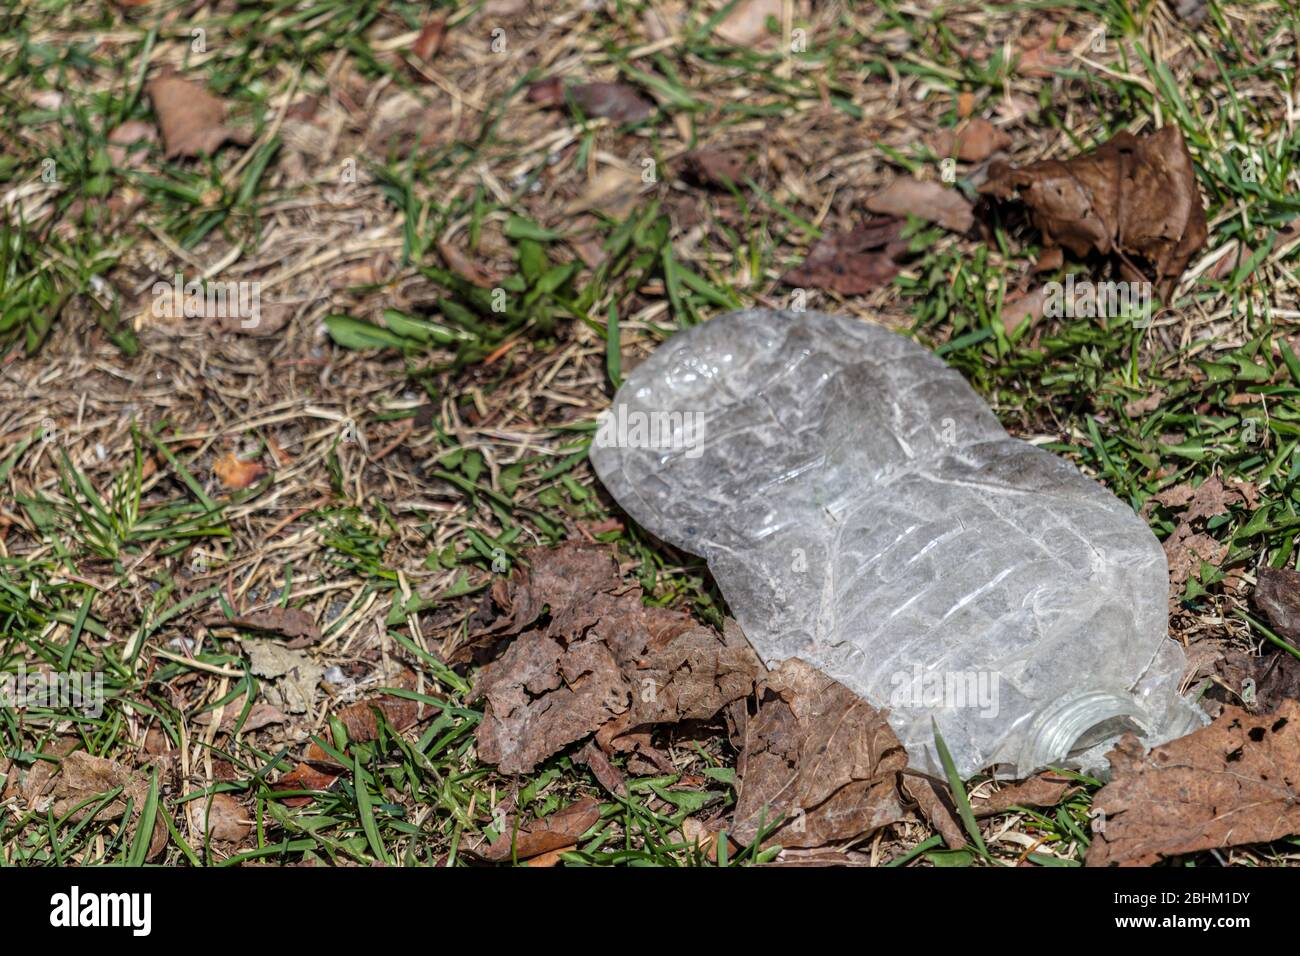 A plastic water bottle has been flattened and sits on the grass outside. Stock Photo